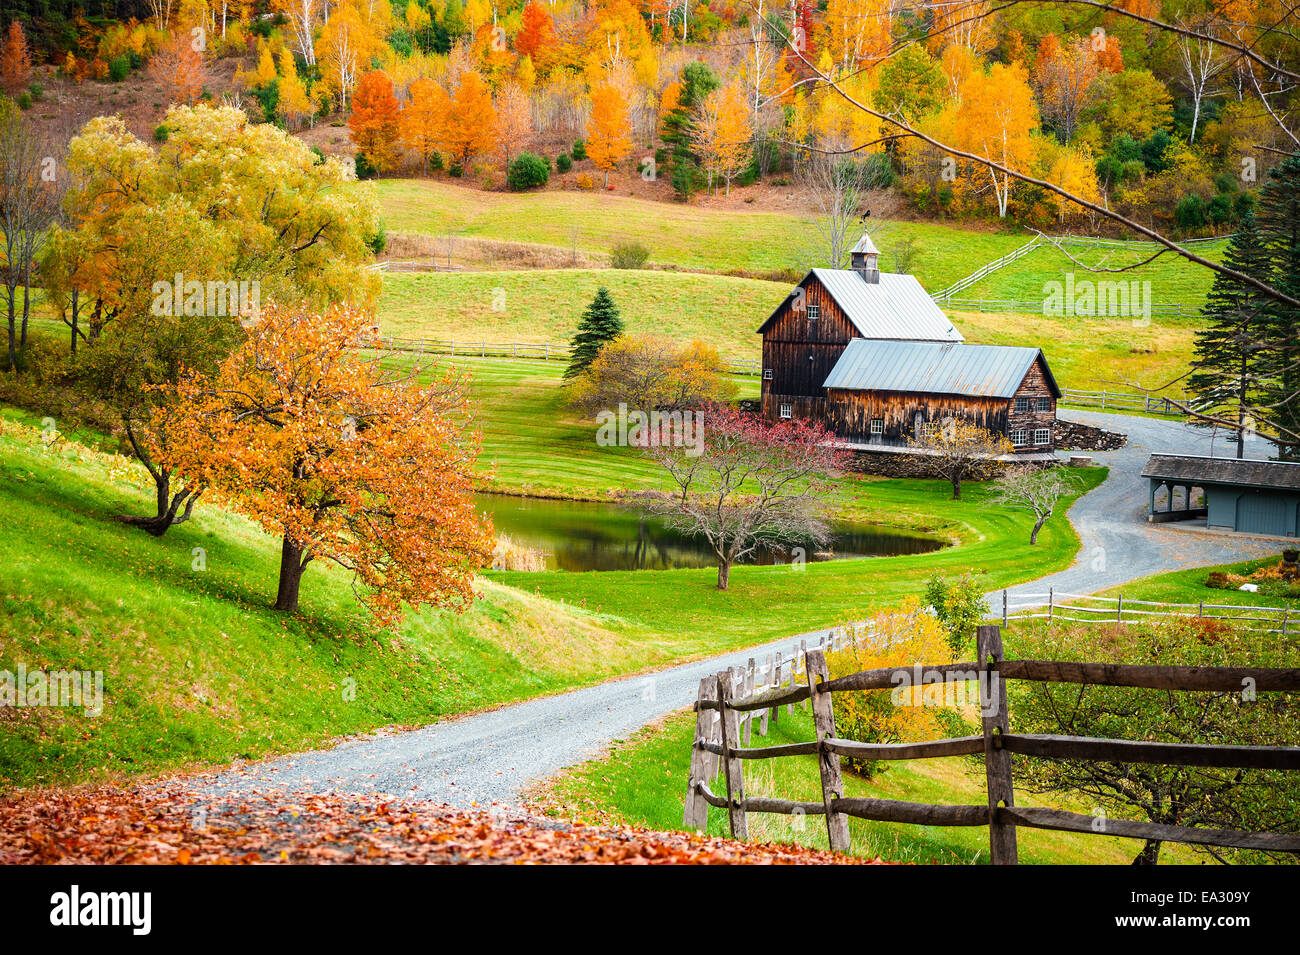 Fall Foliage New England Countryside At Woodstock